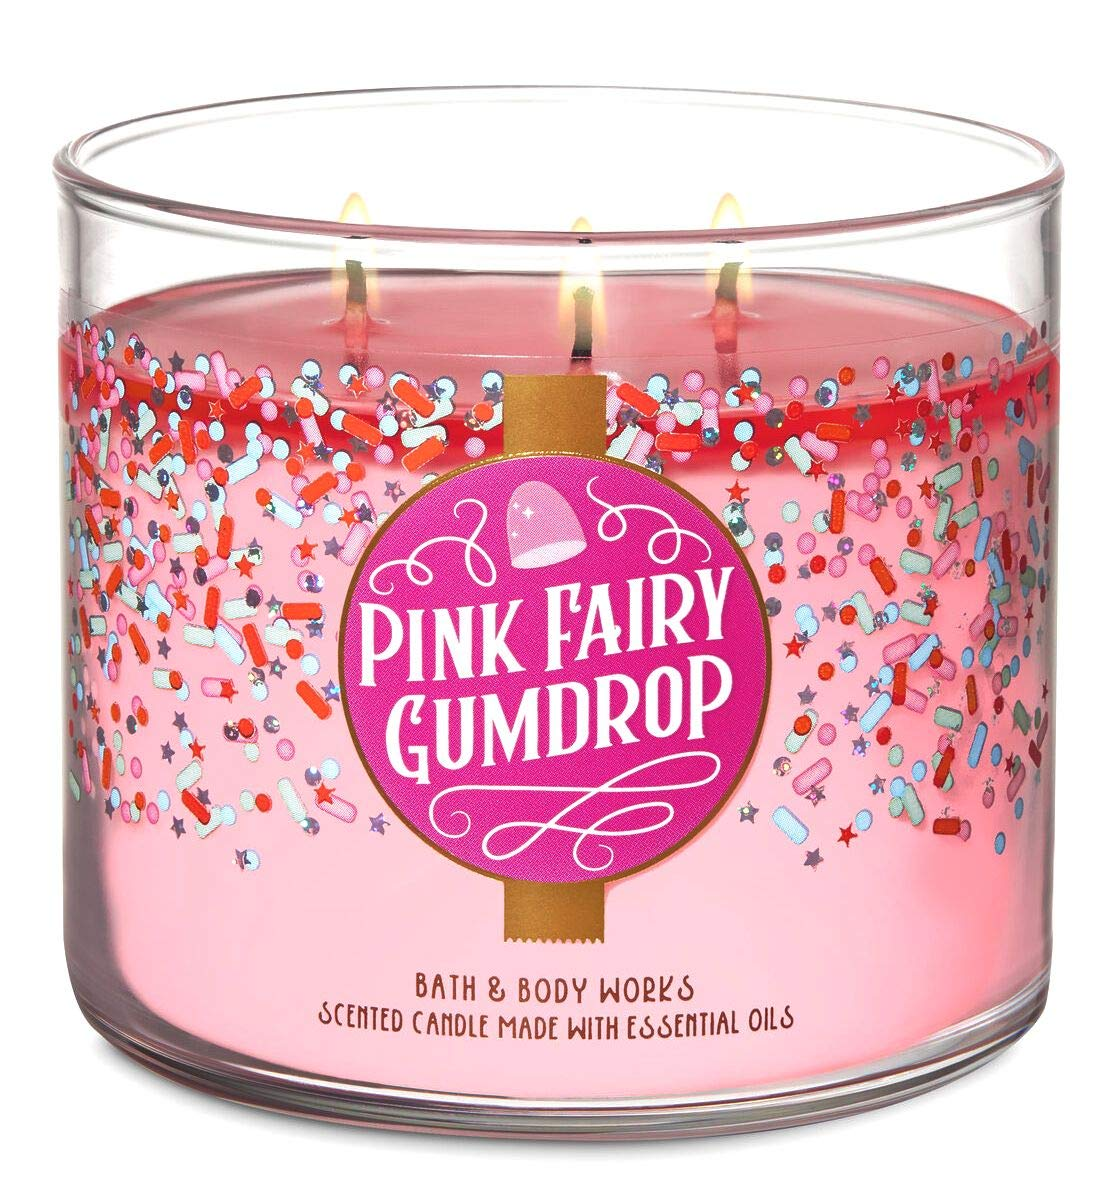 Bath and Body Works Pink Fairy Gumdrop Candle - Cotton Candy Scent - Large 14.5 Ounce 3-Wick - New for Christmas Holiday Land of Sweets Collection 2019